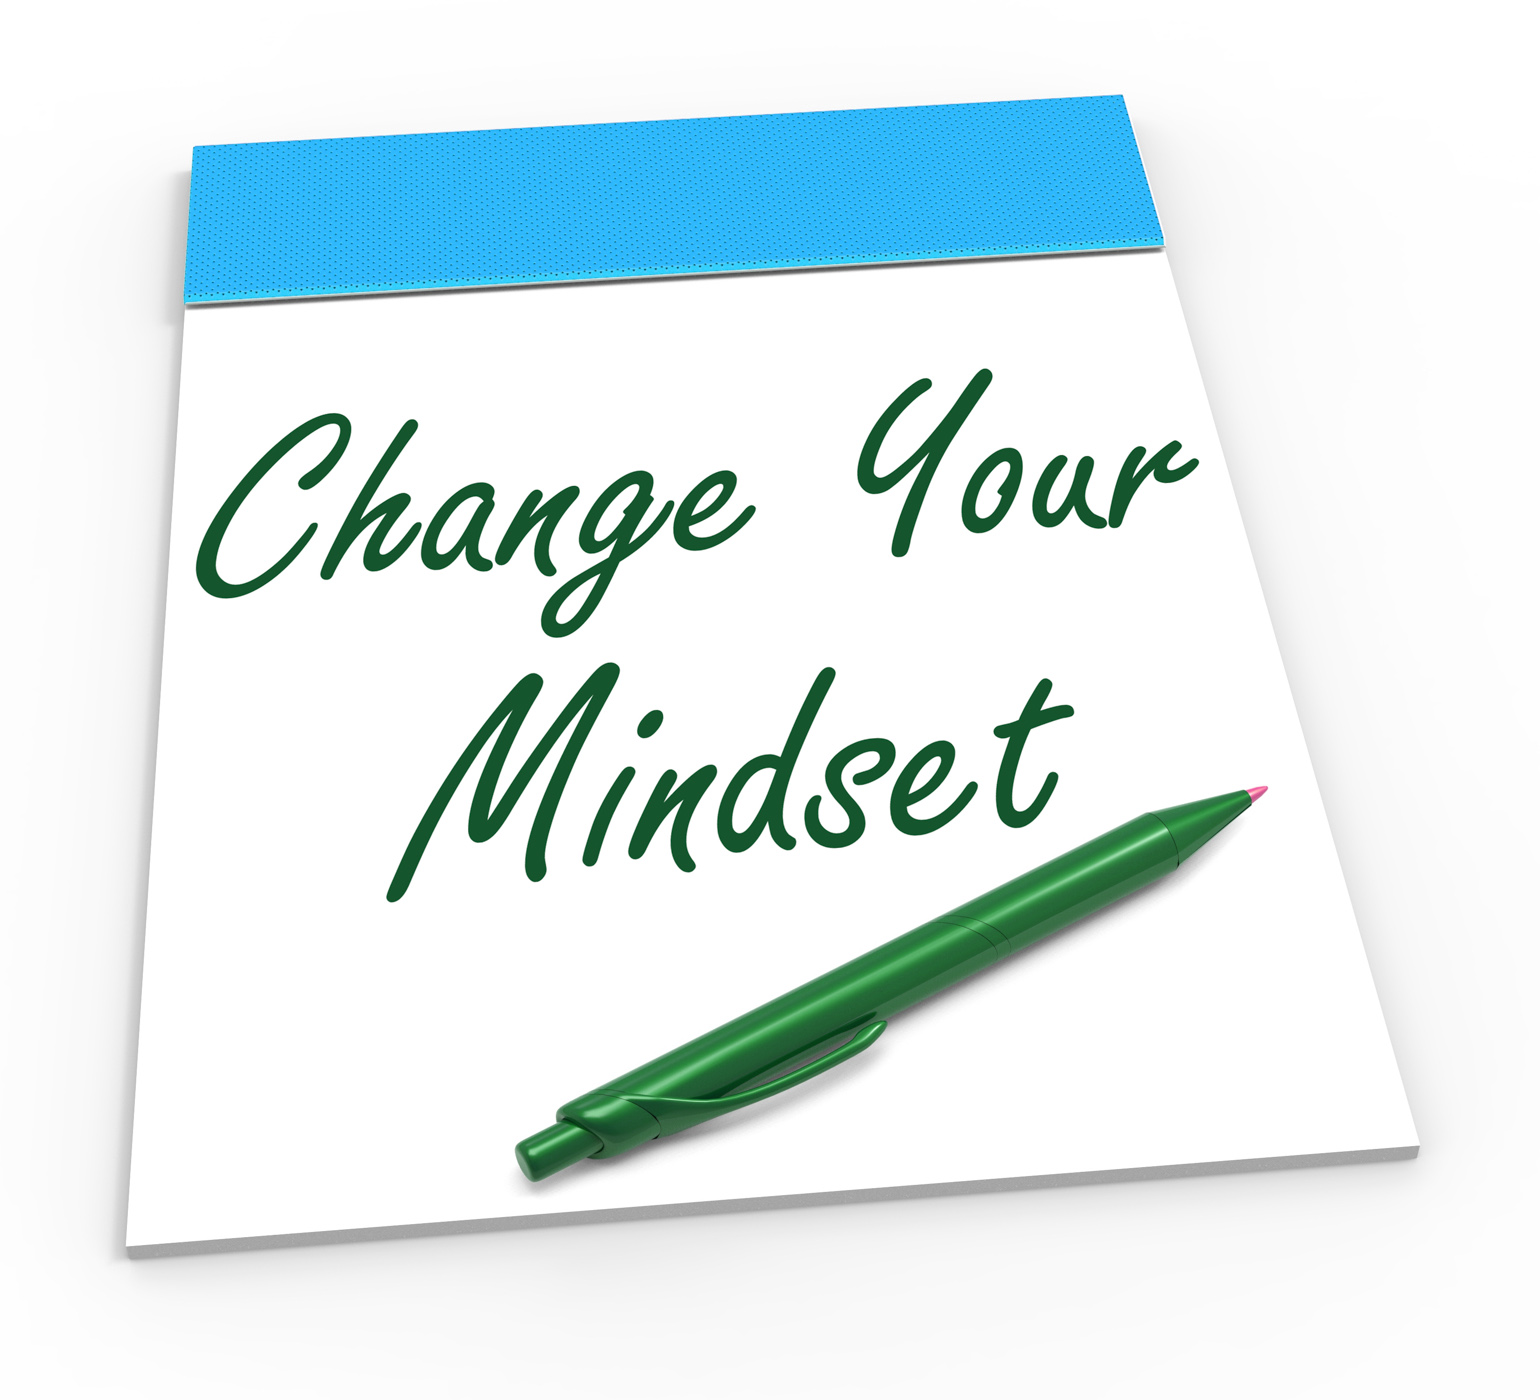 Change your mind set notebook shows optimism and reactive attitude photo